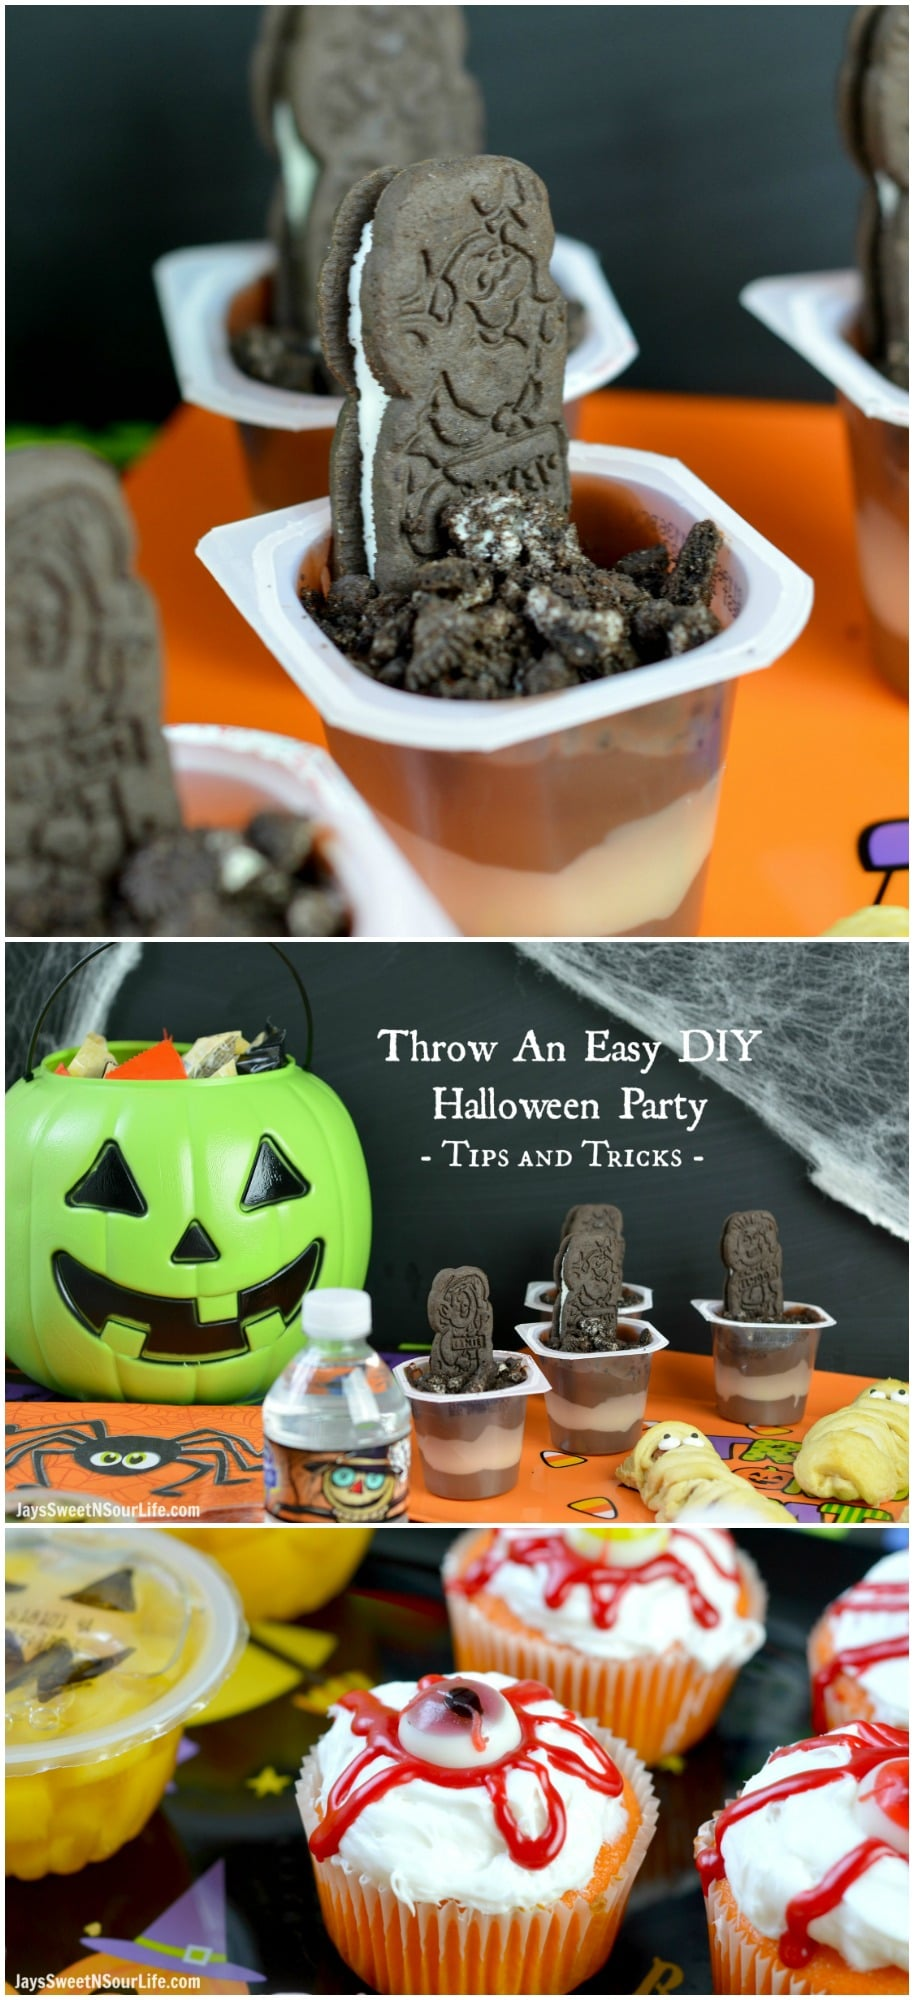 Throw An Easy DIY Halloween Party - Tips and Tricks - Jays Sweet N ...